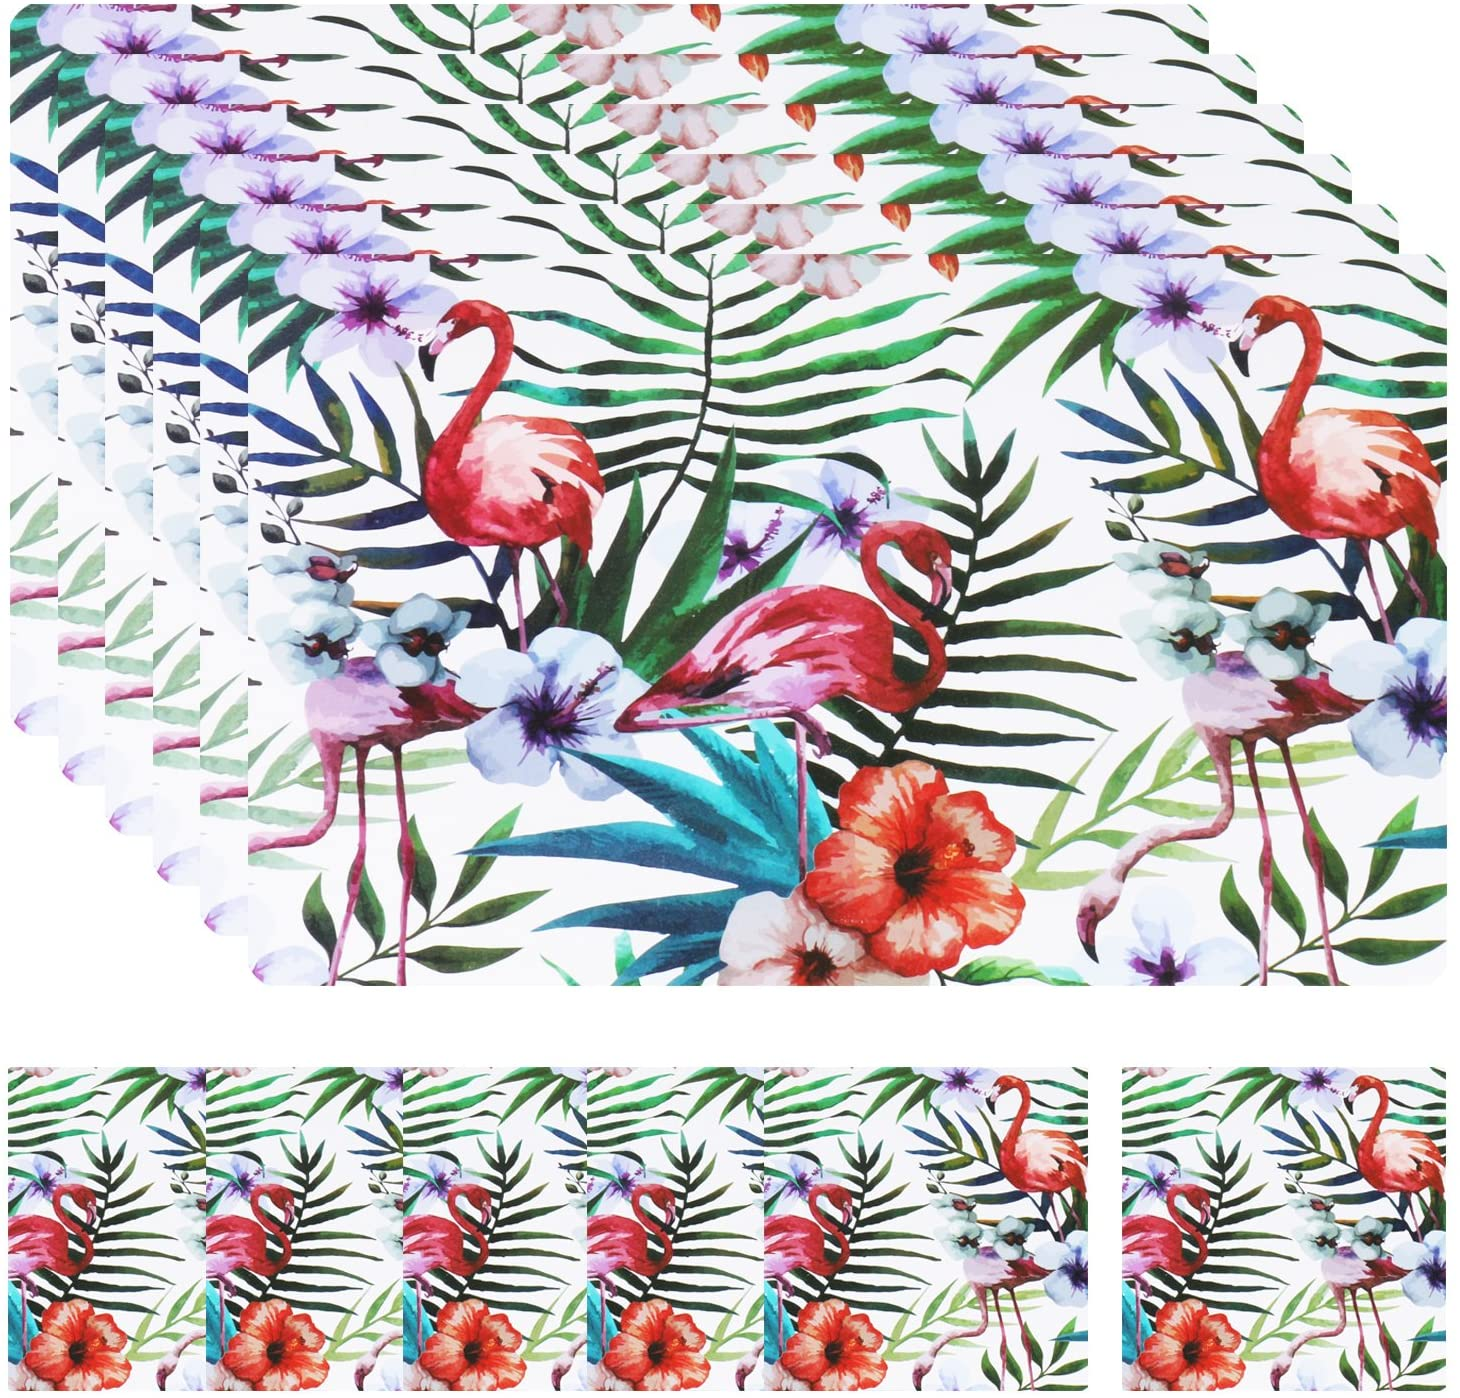 Olen Plastic Placemats Kitchen Table Place Mats for Kitchen Dining Table Set of 6 + 6 Coasters Flamingo